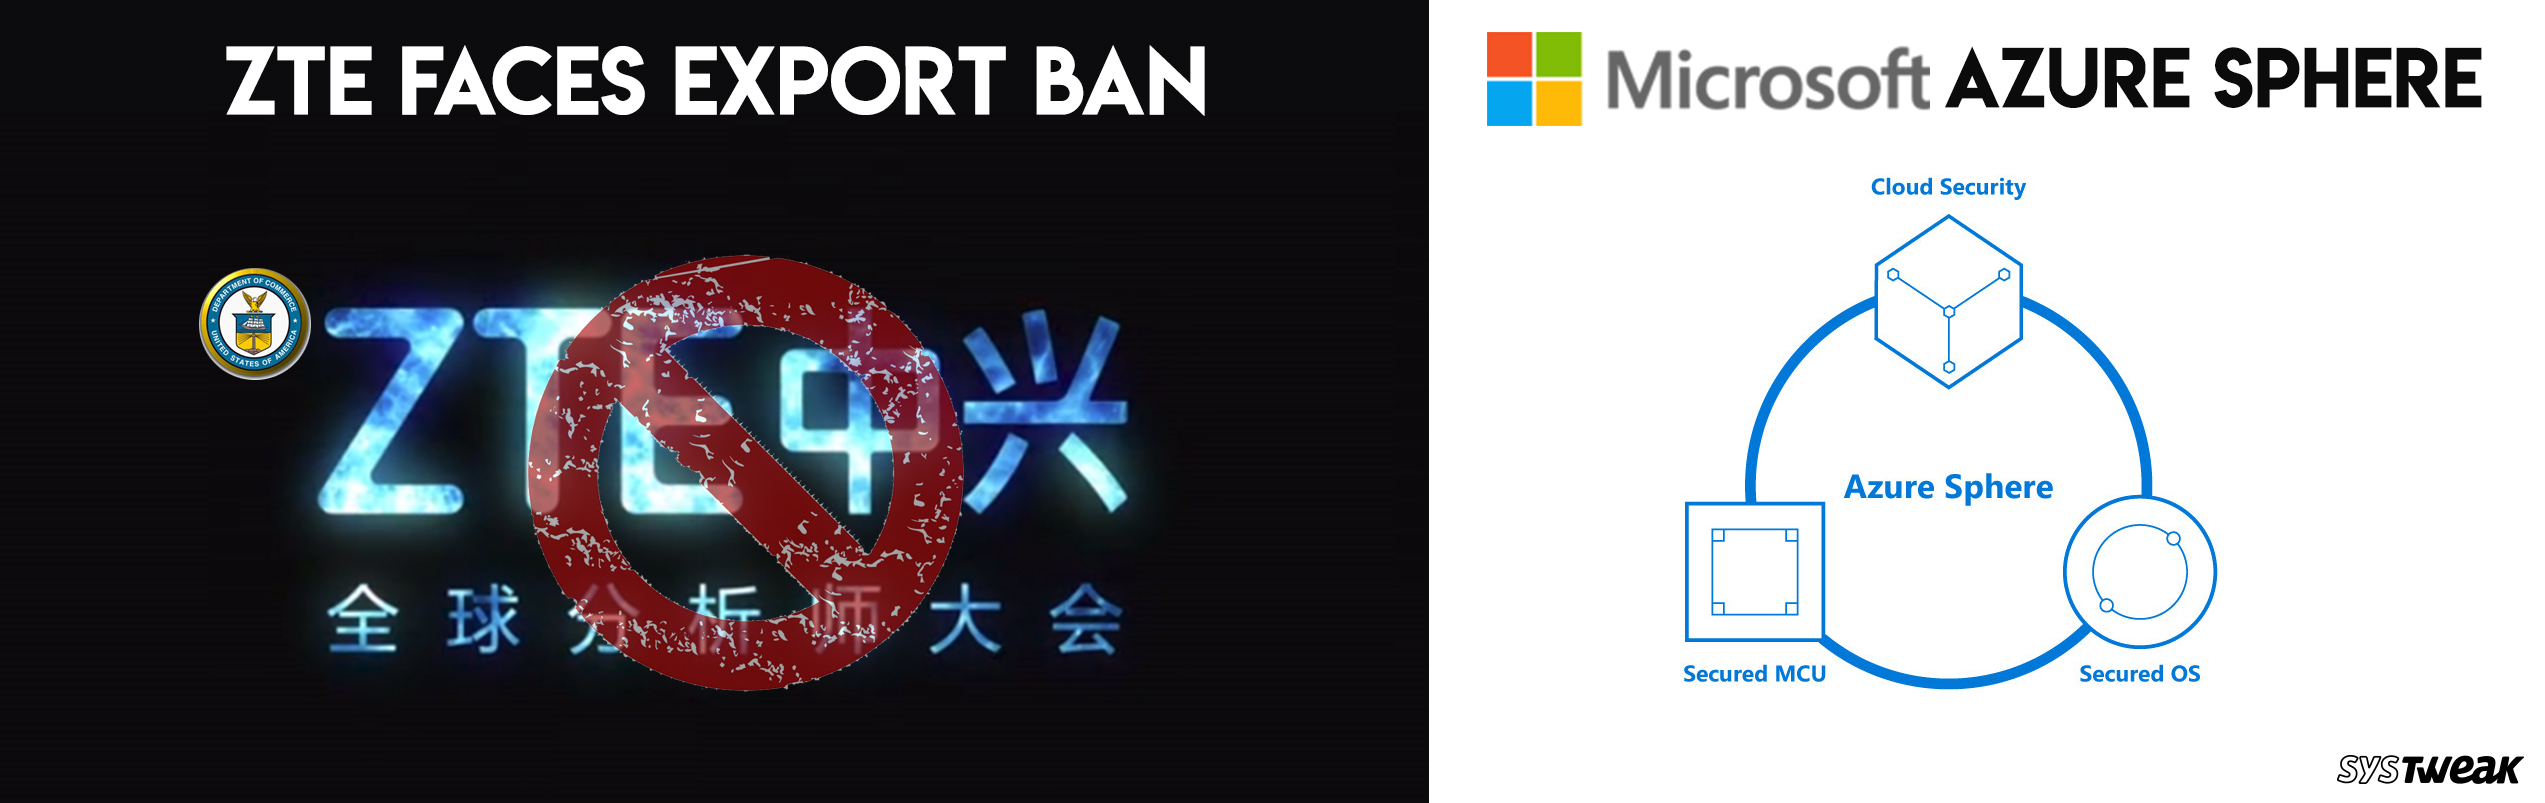 Newsletter: US Bans Home Companies to Export Stuff To ZTE & Microsoft Launches Azure Sphere